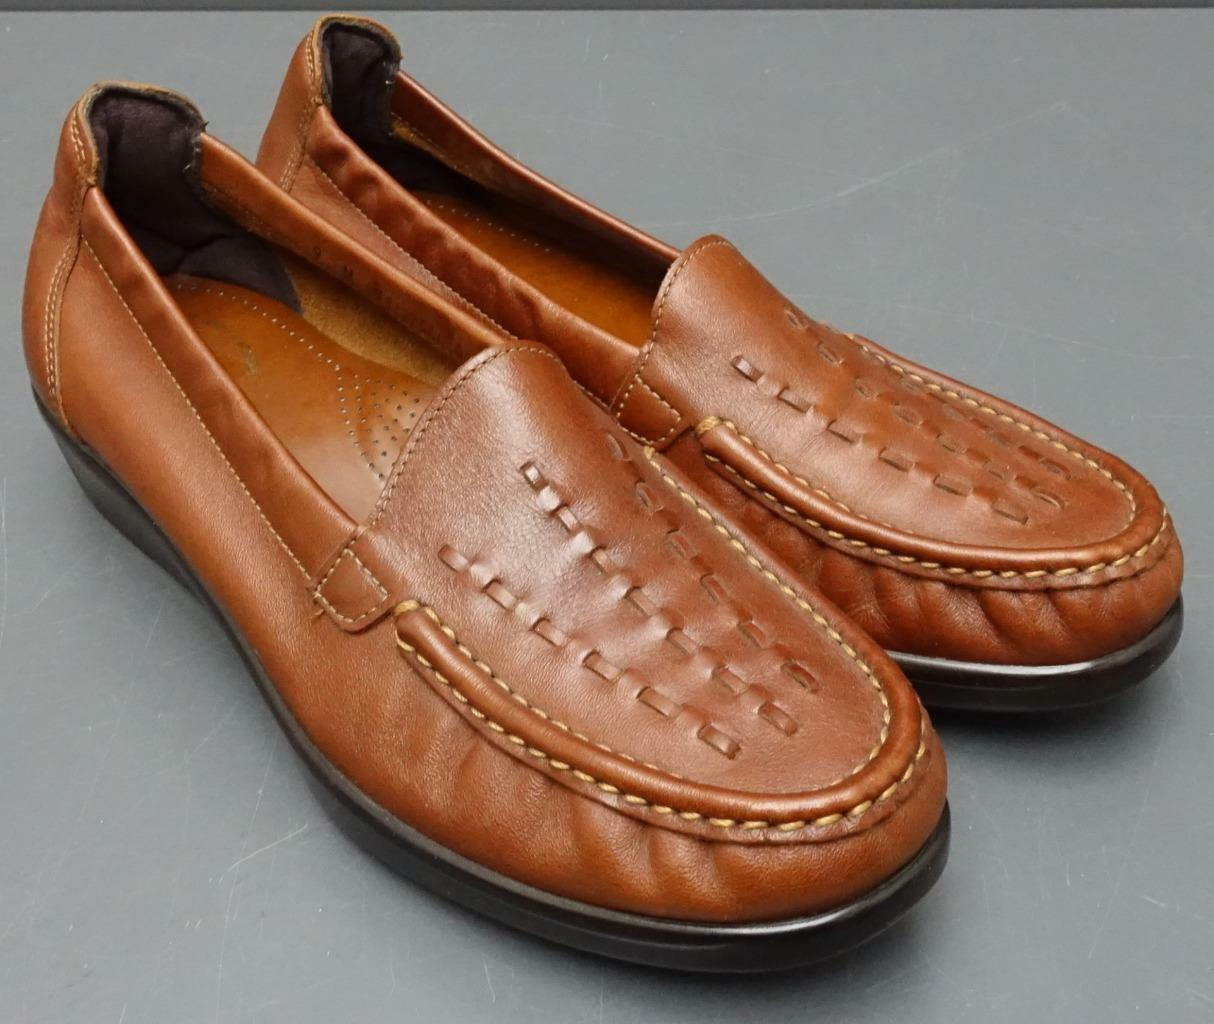 Women SAS Weave Tripad Comfort Chestnut Leather Slip On Loafer Comfort shoes 9M